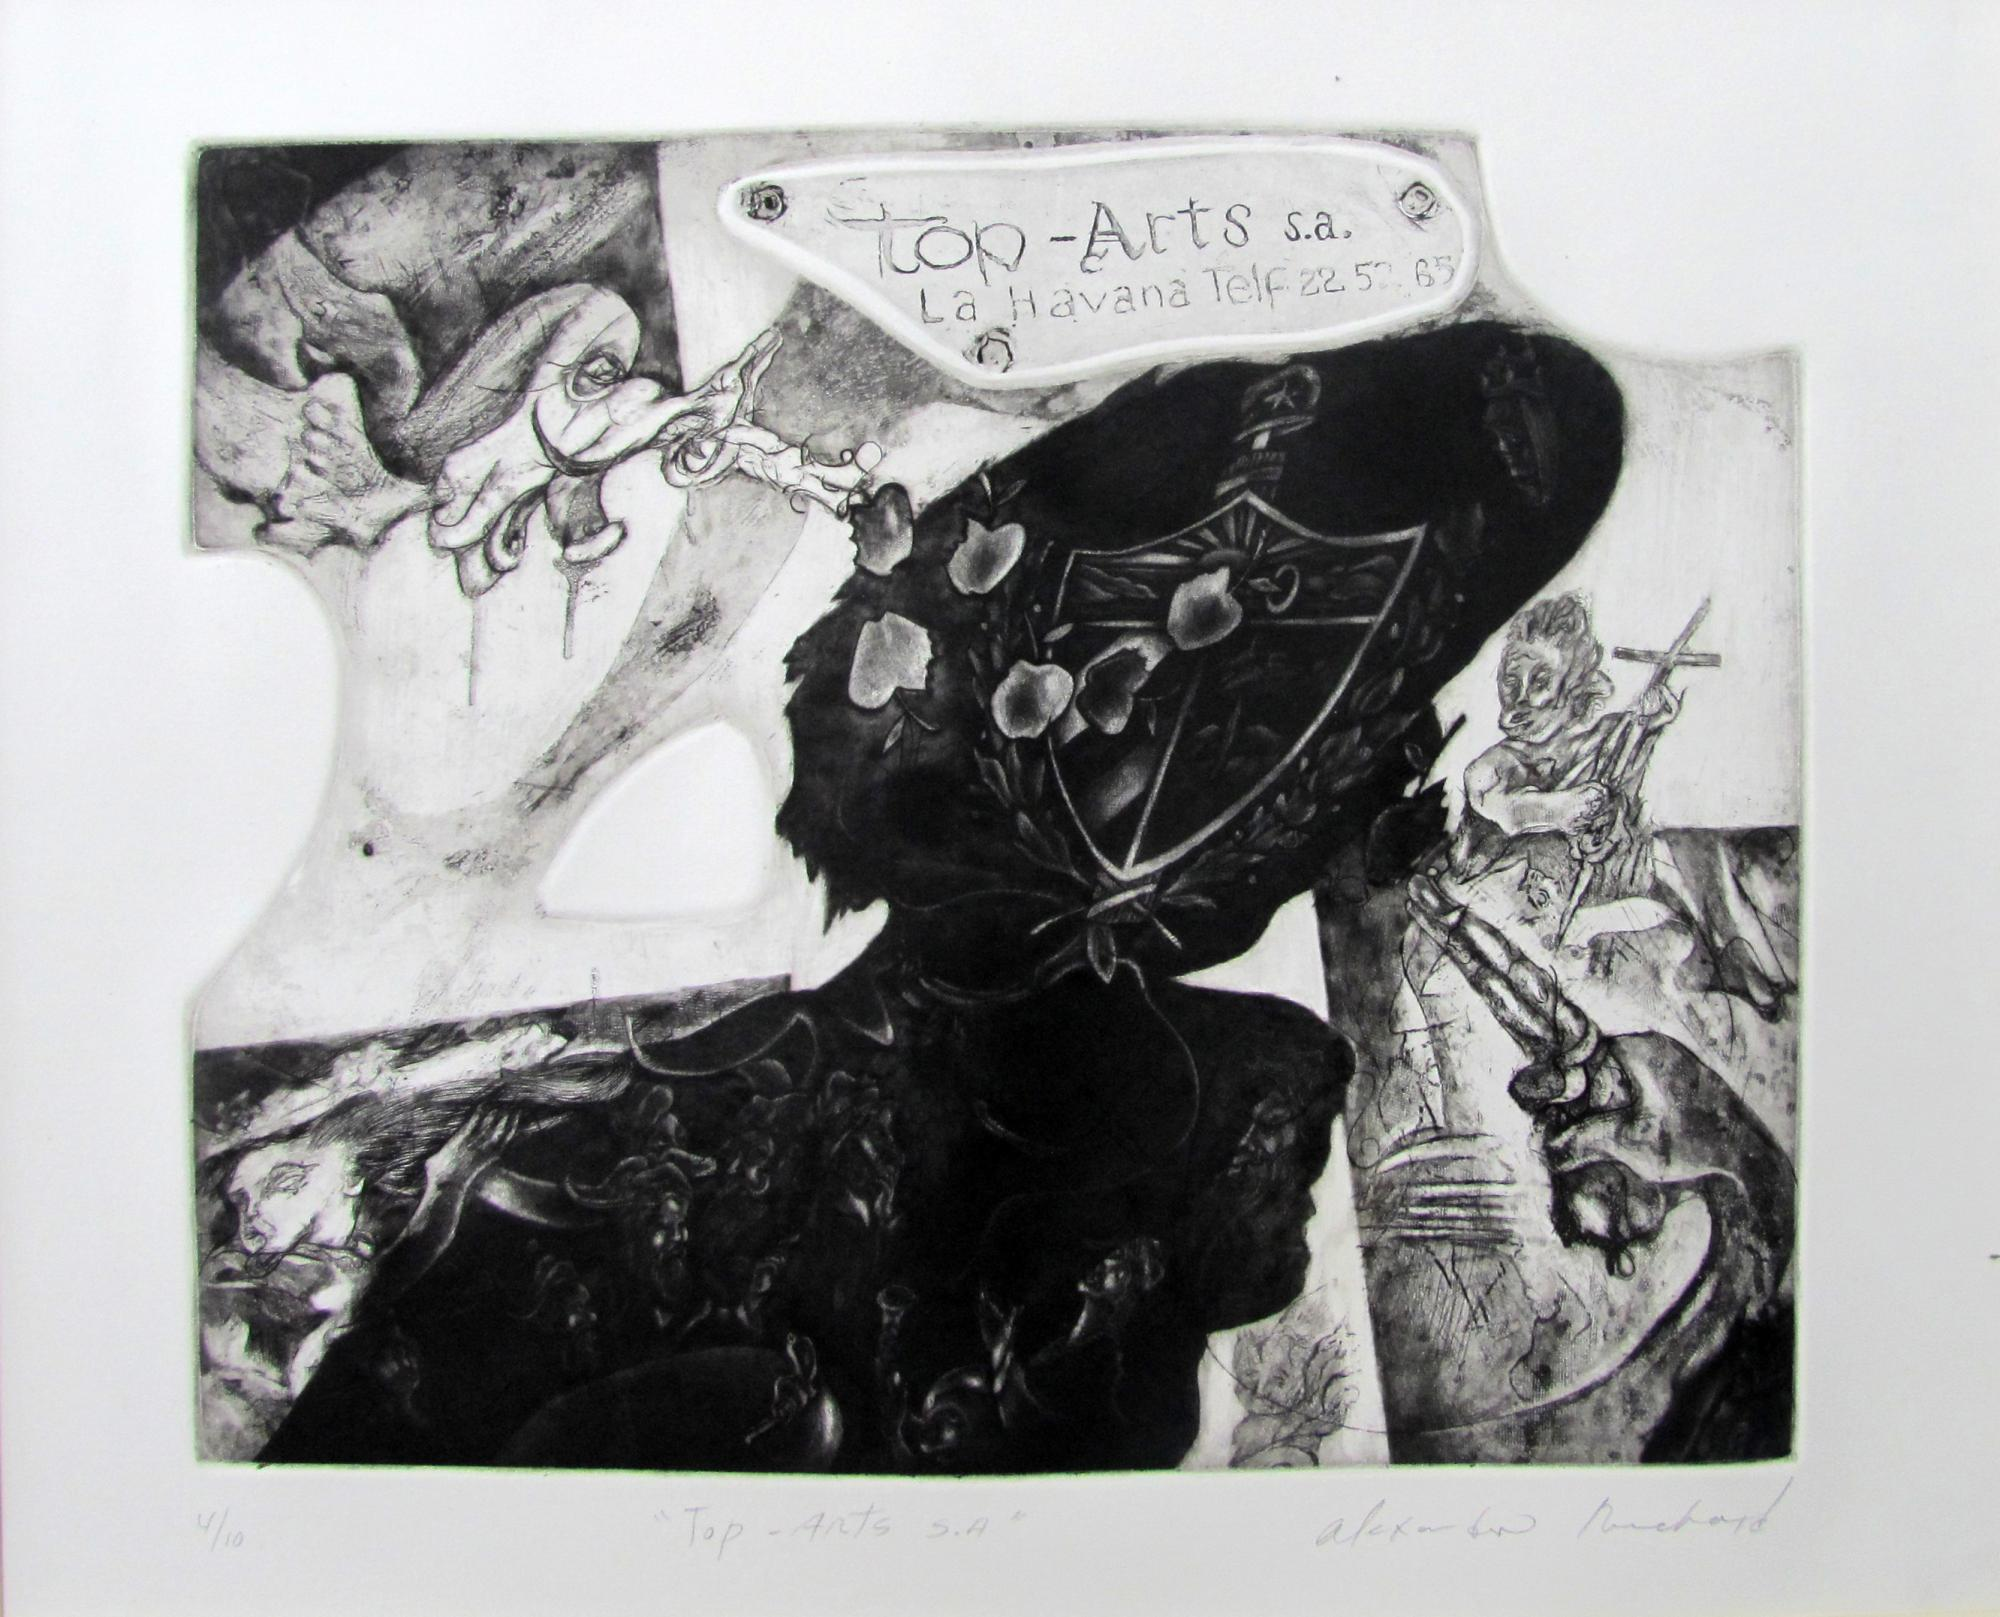 Top Arts.  Etching .1995. 24 x 19 inches